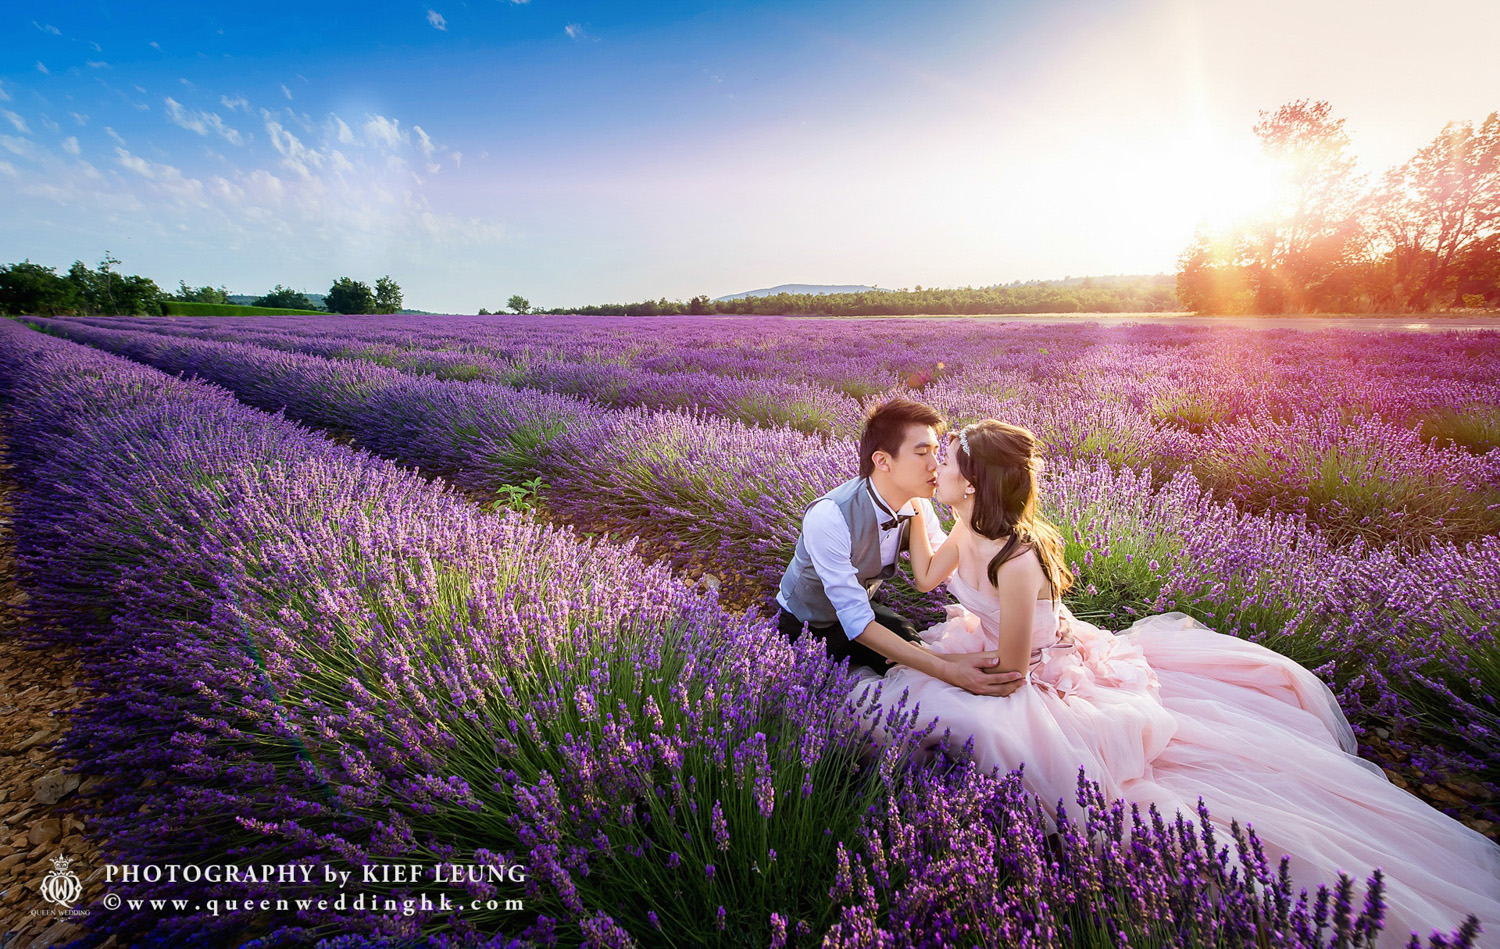 cn-hk-hong-kong-professional-photographer-pre-wedding-top-best-hongkong-香港-婚紗婚禮攝影-0001.jpg